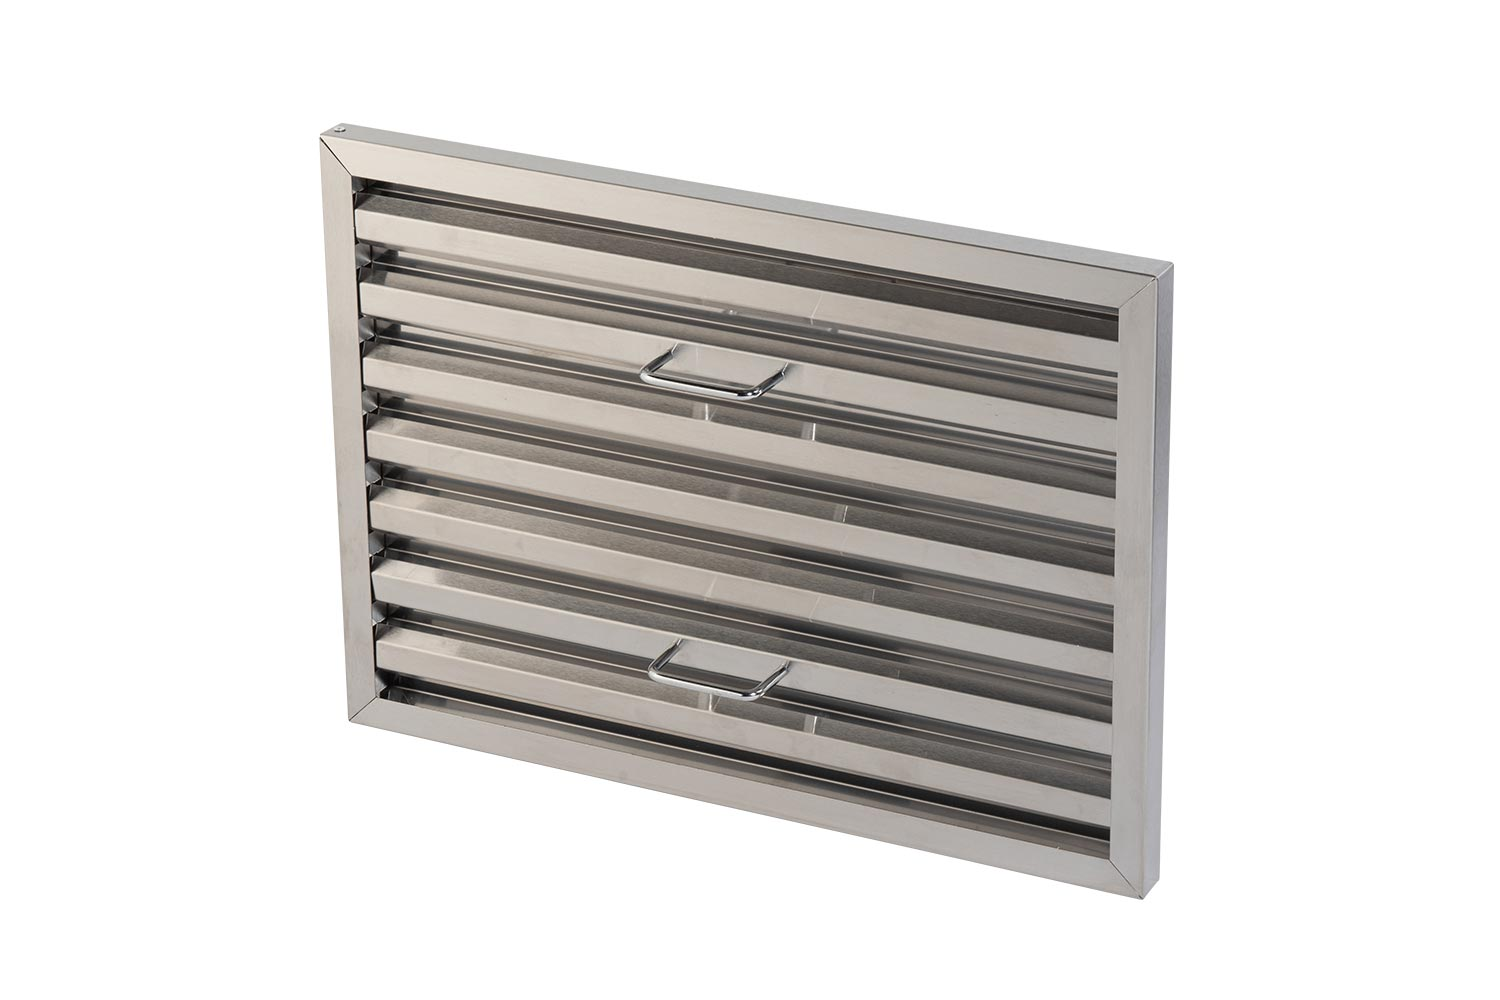 Baffle (Stainless Steel) for CL8815 - AC0675FIL2046